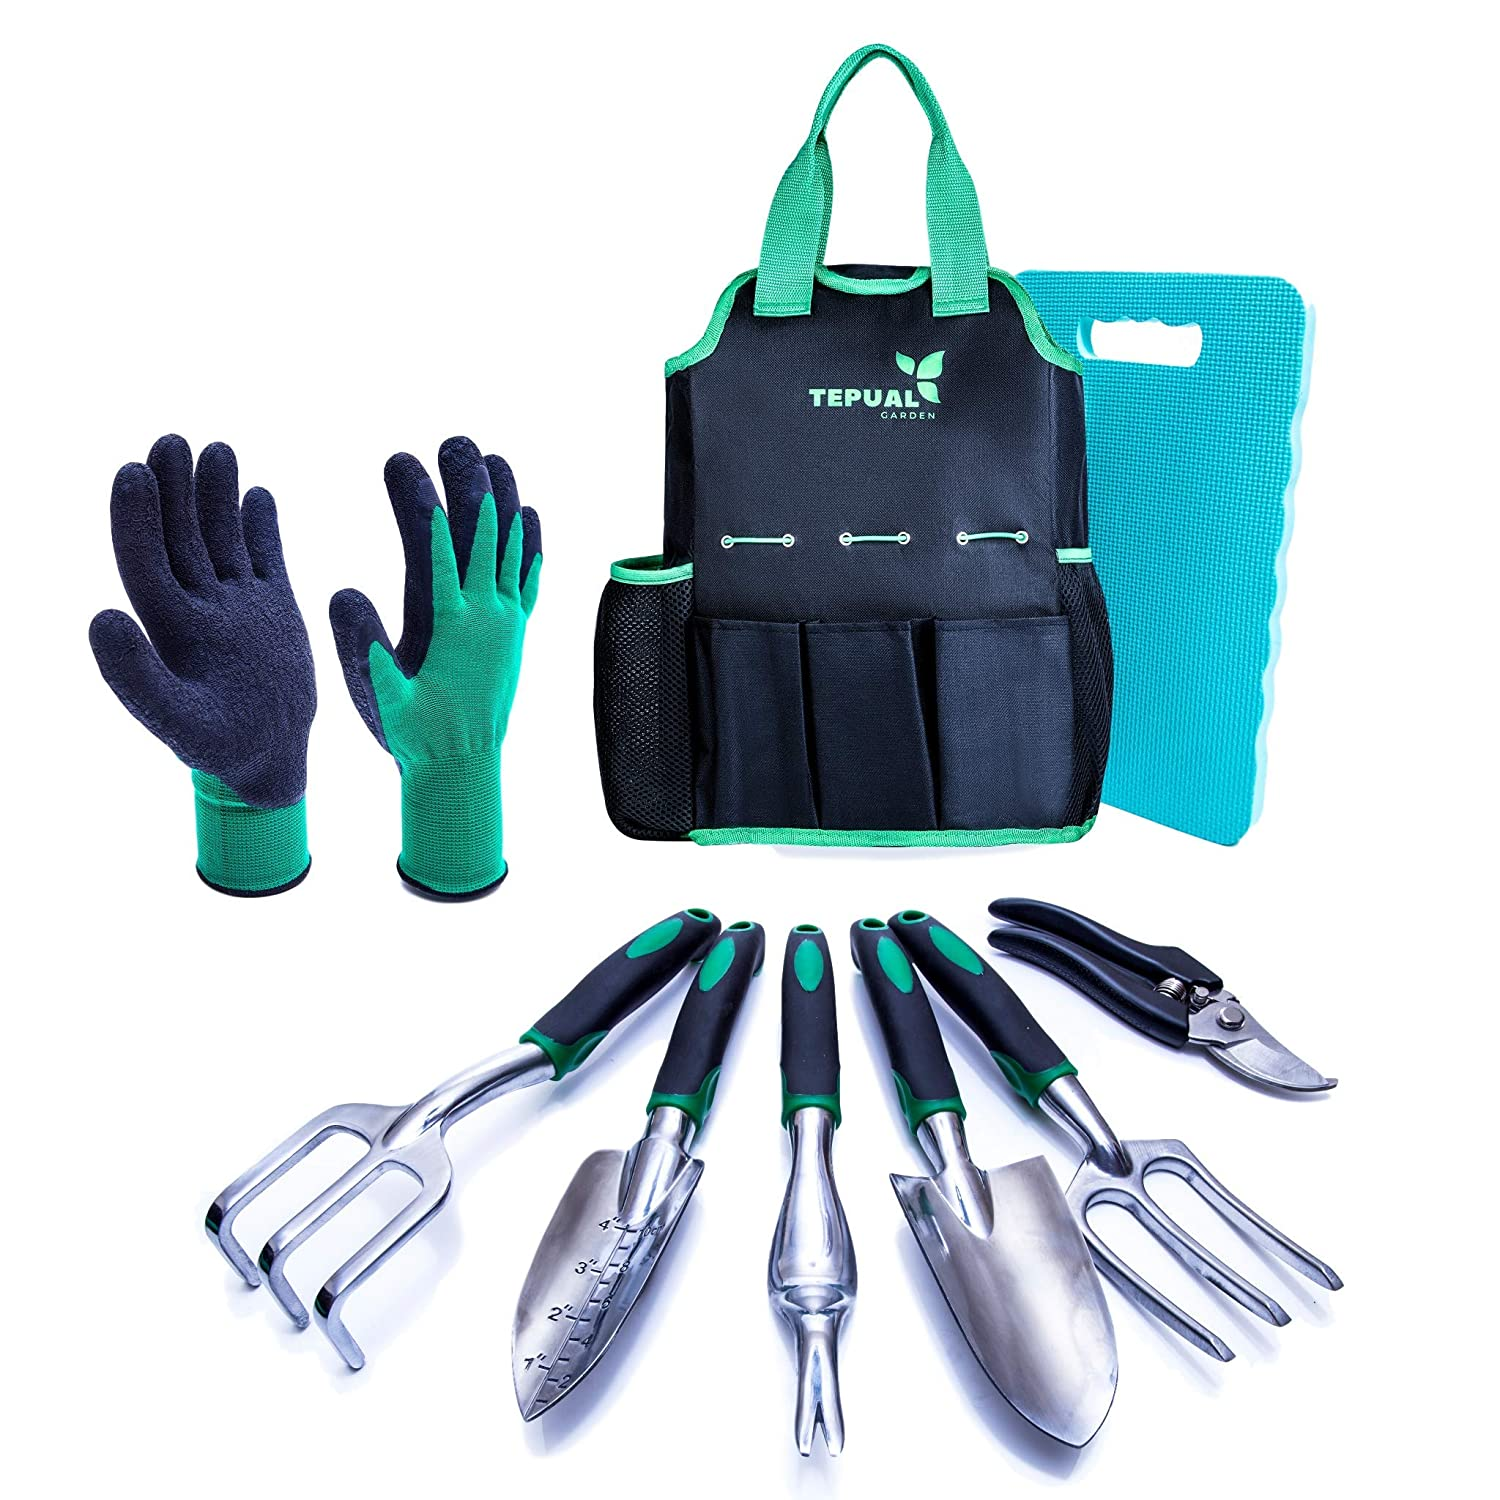 Tepual Garden Tool Set – 9 Pieces Gardening Tool Set Make The Perfect Gifts for Women and Men – Comes With Convenient Garden Tool Bag And Knee Pad For Comfort – Pair Of Gloves as Bonus